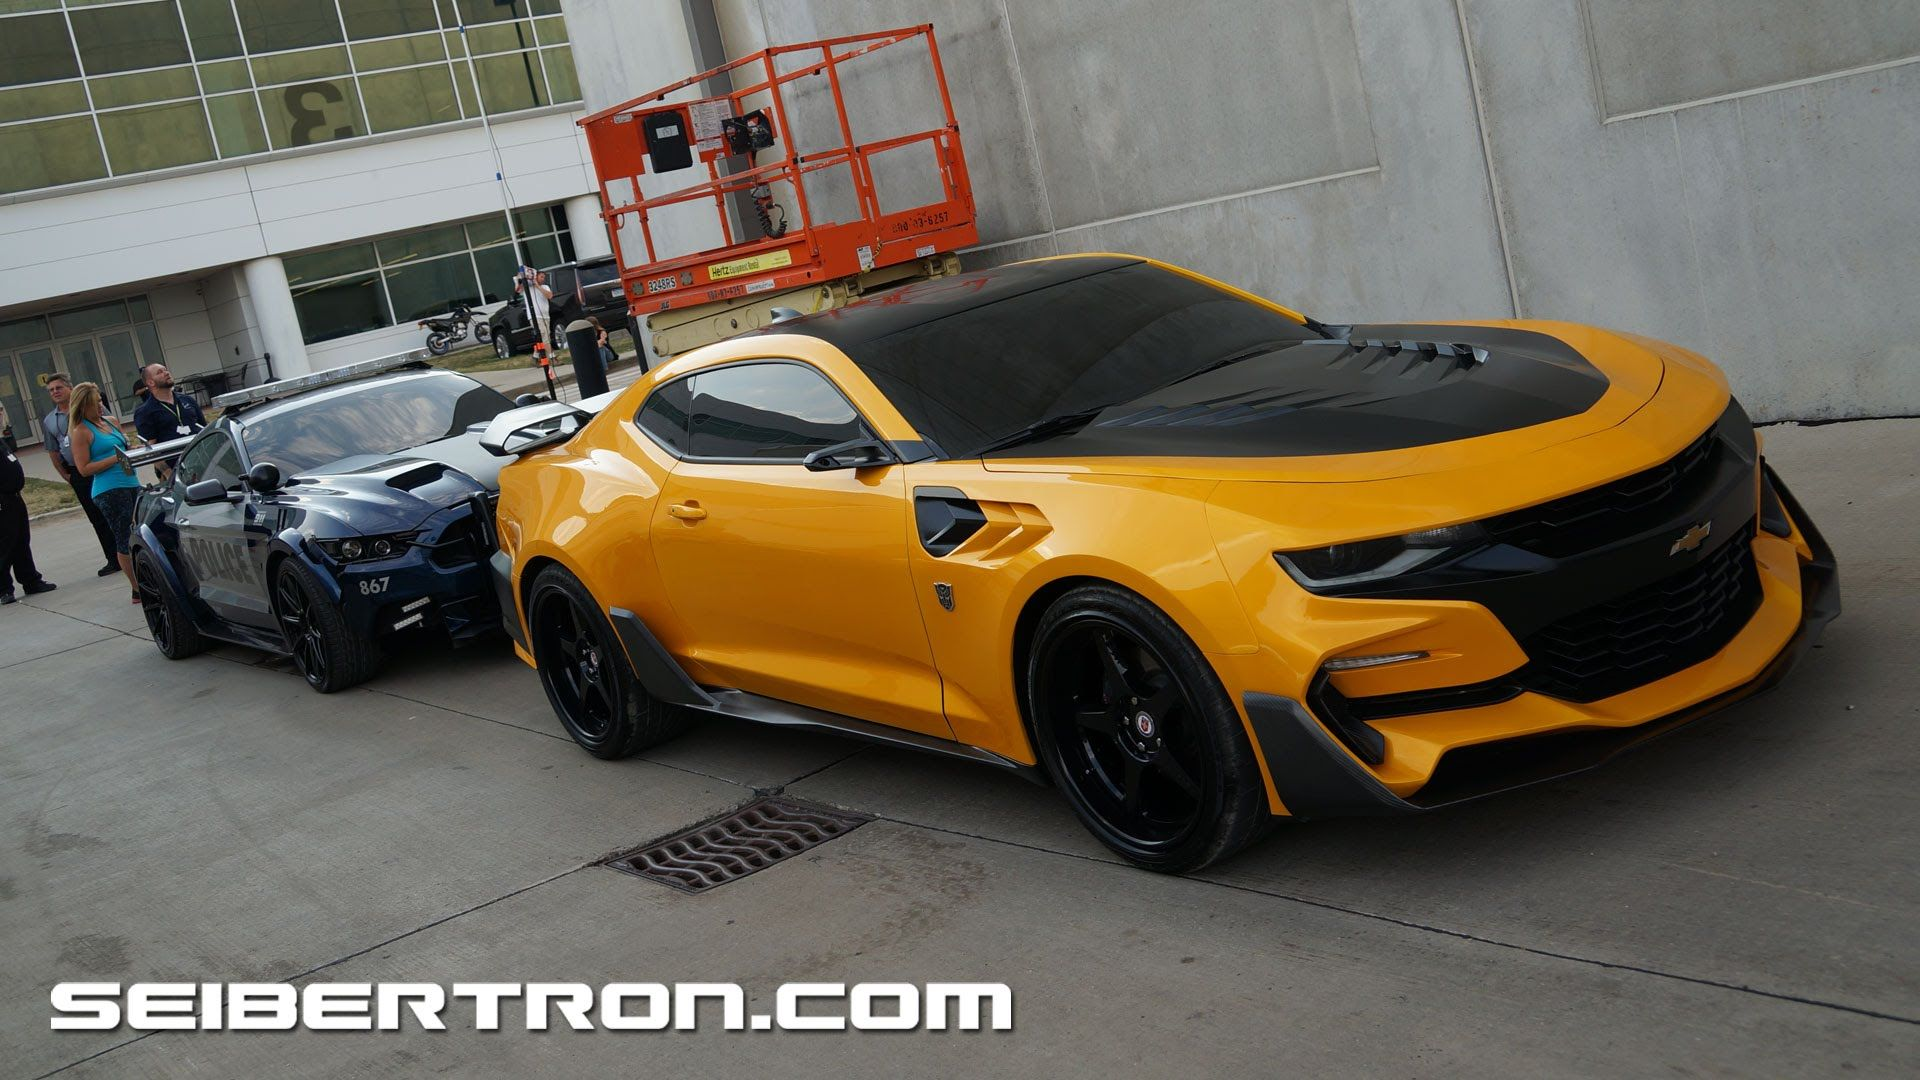 Cars Of Transformers The Last Knight Camaro Chevrolet Camaro Bumblebee Chevrolet Camaro